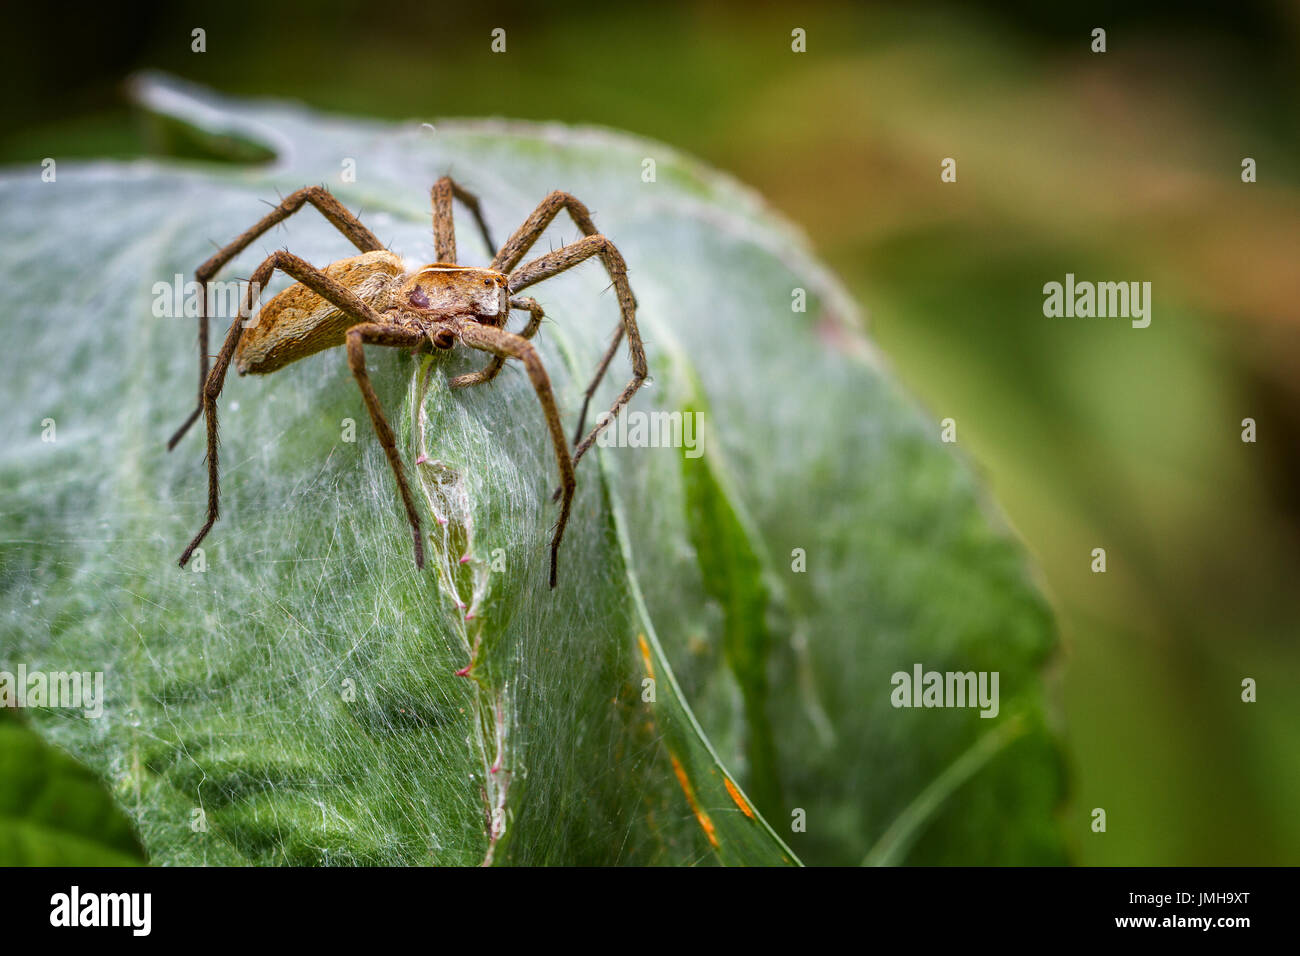 UK wildlife: Pisaura mirabilis - Nursery web spider protecting tent-style nest she has spun. Her babies are underneath. - Stock Image